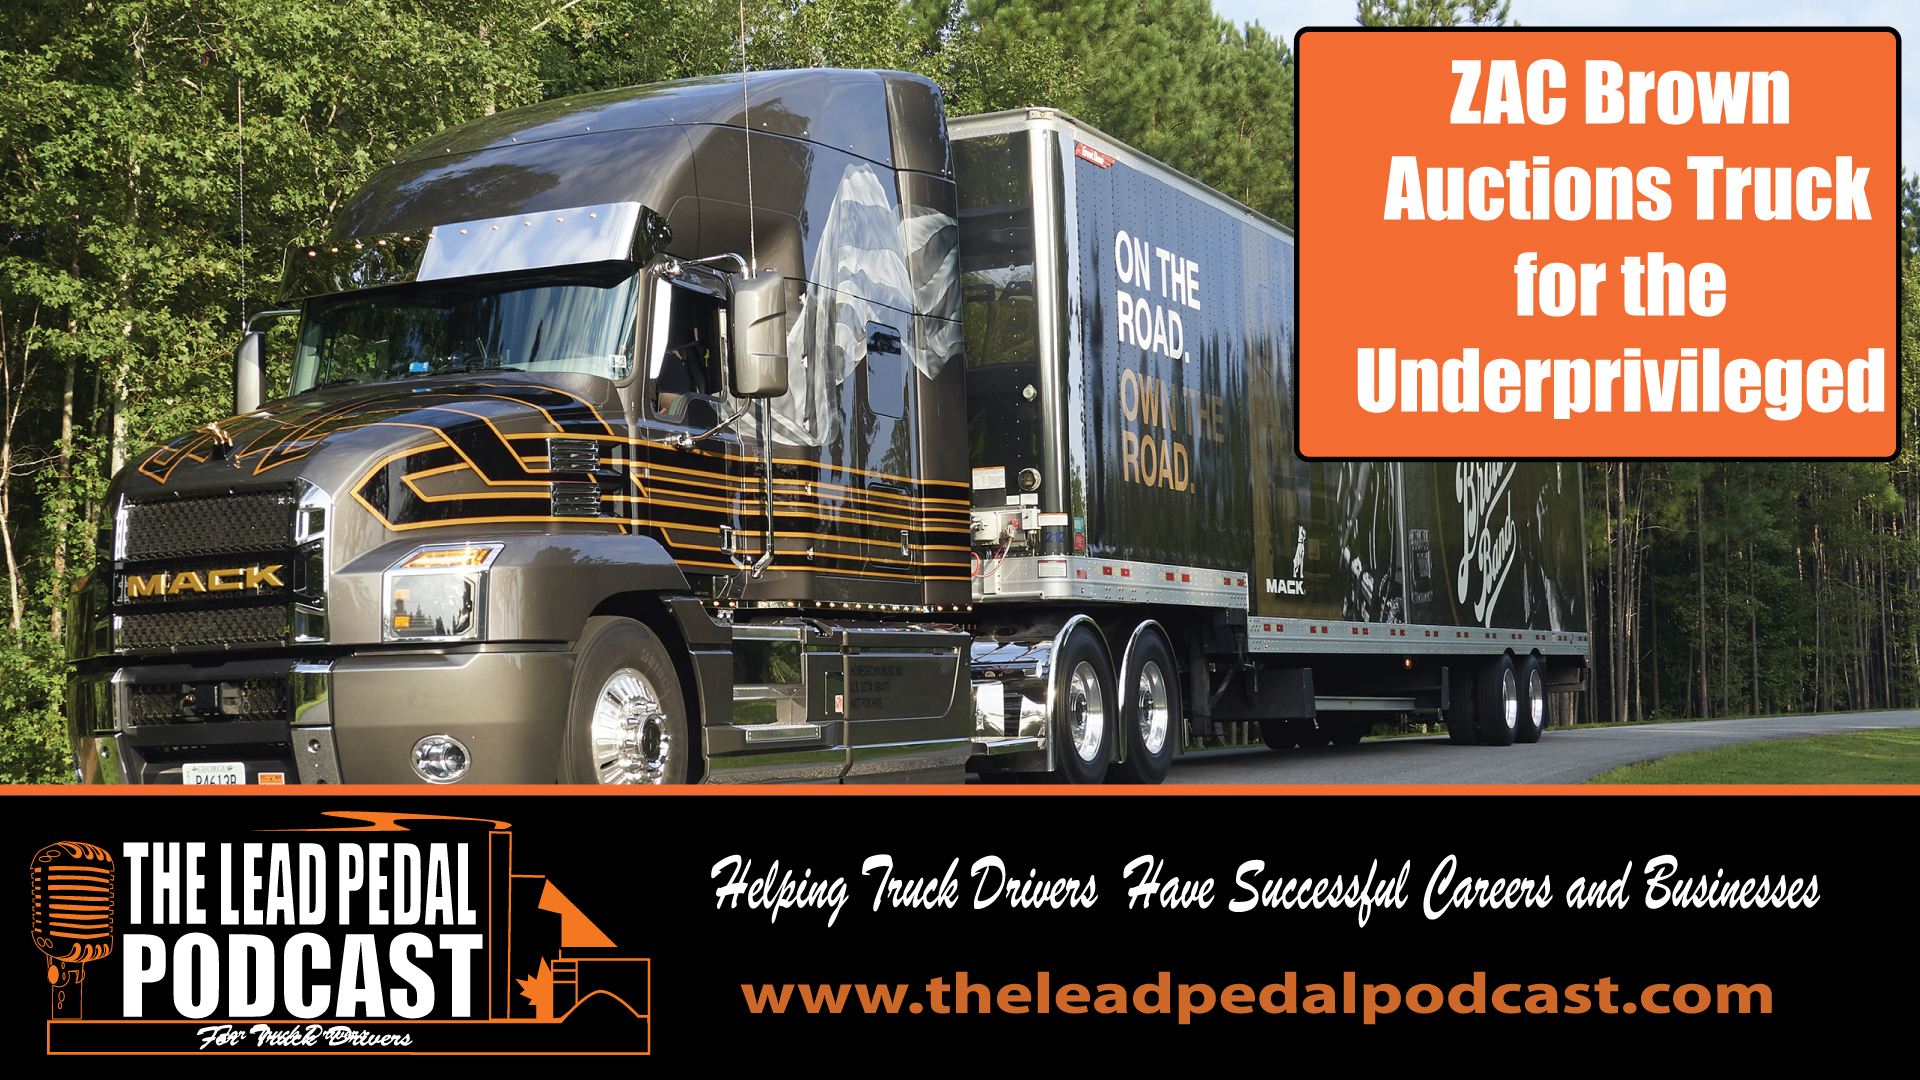 Zac Brown Auction